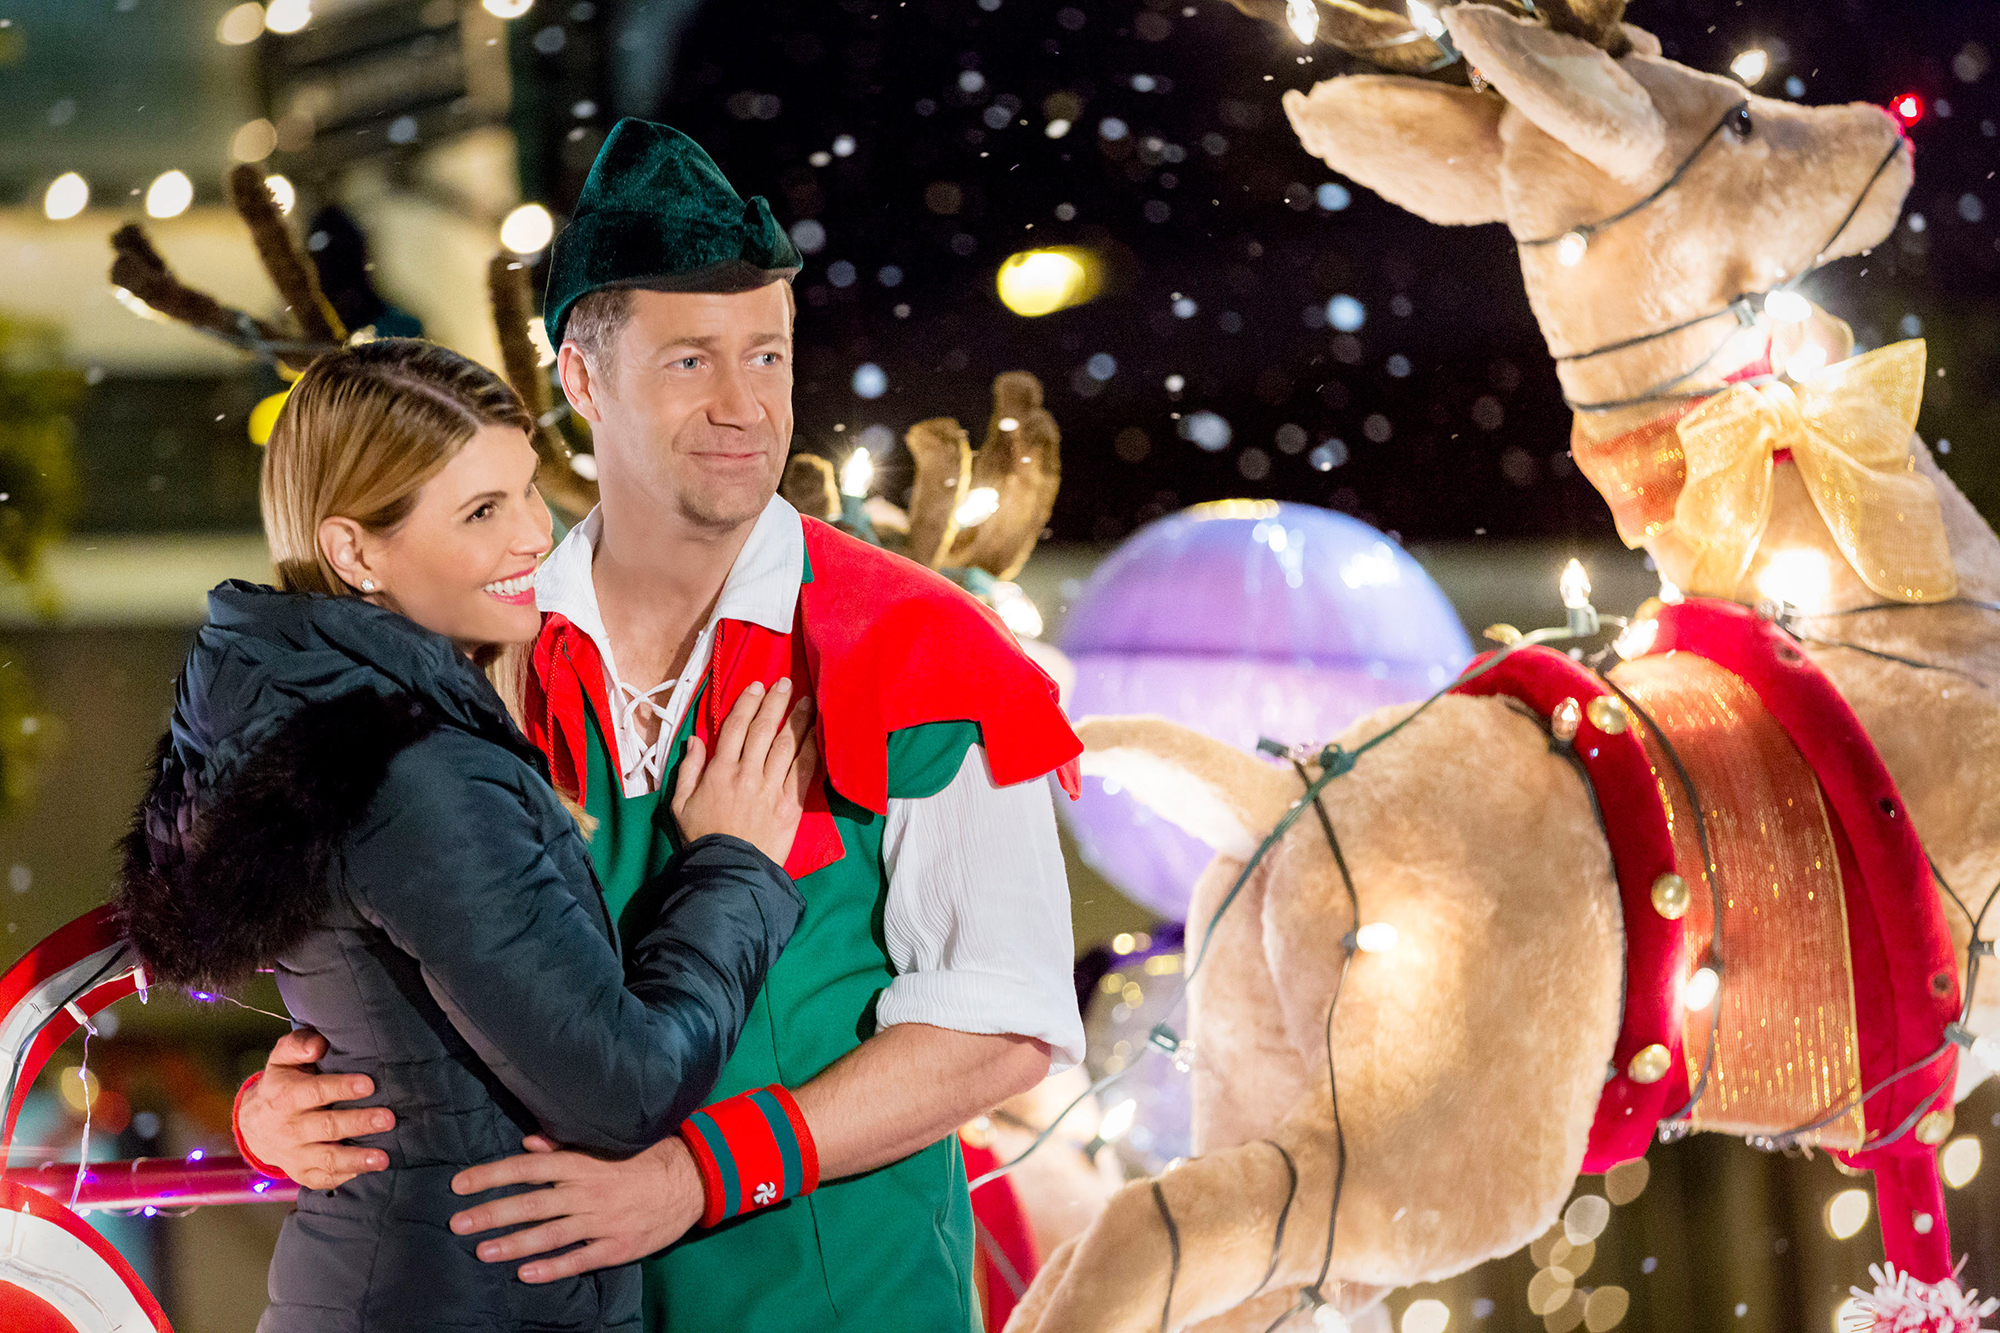 Hallmark movies have ruined Christmas entertainment for 20 years